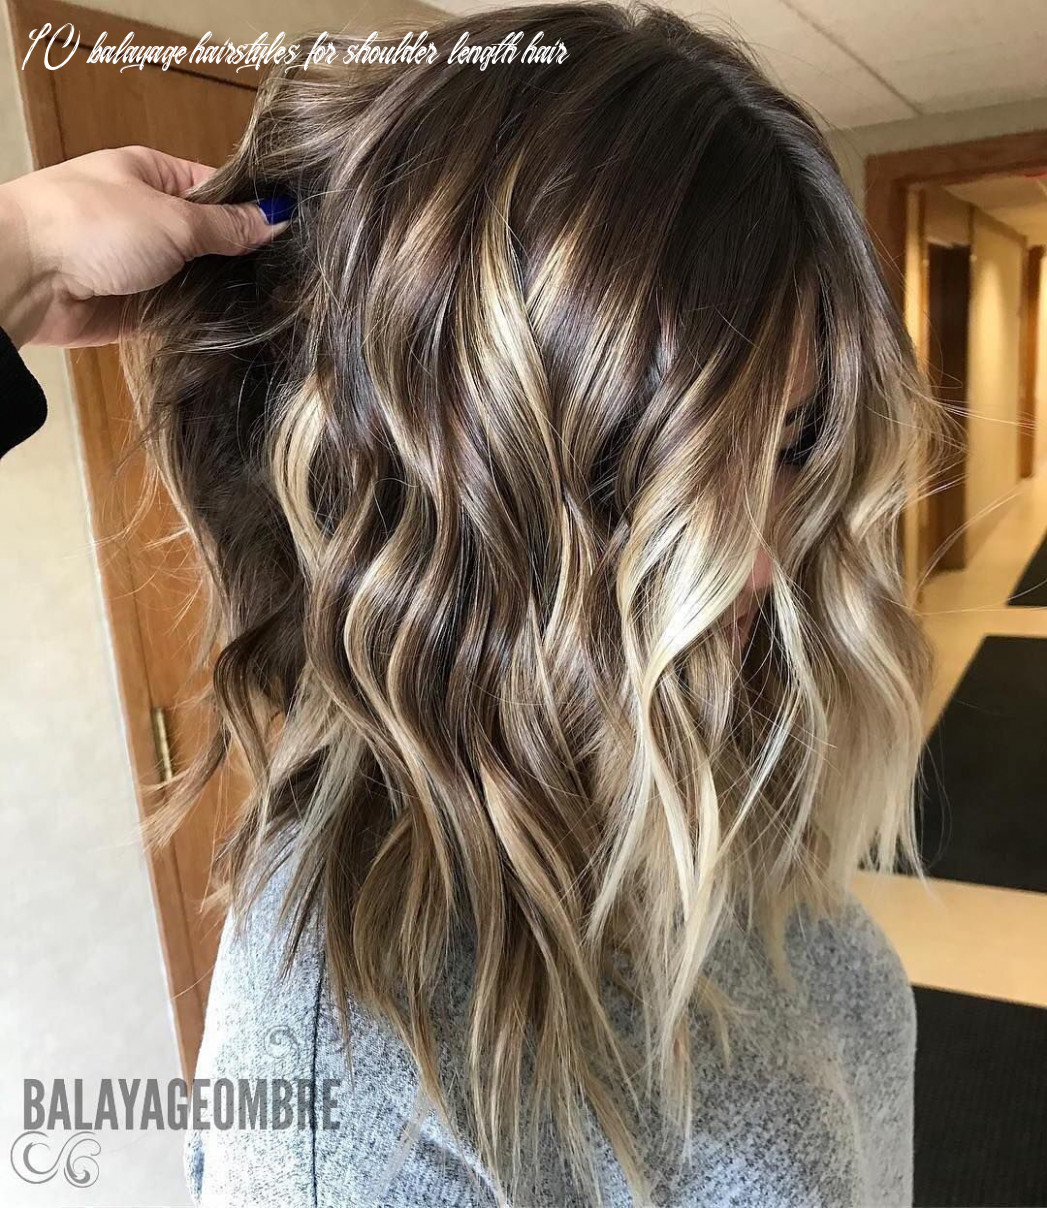 9 trendy brown balayage hairstyles for medium long hair (con